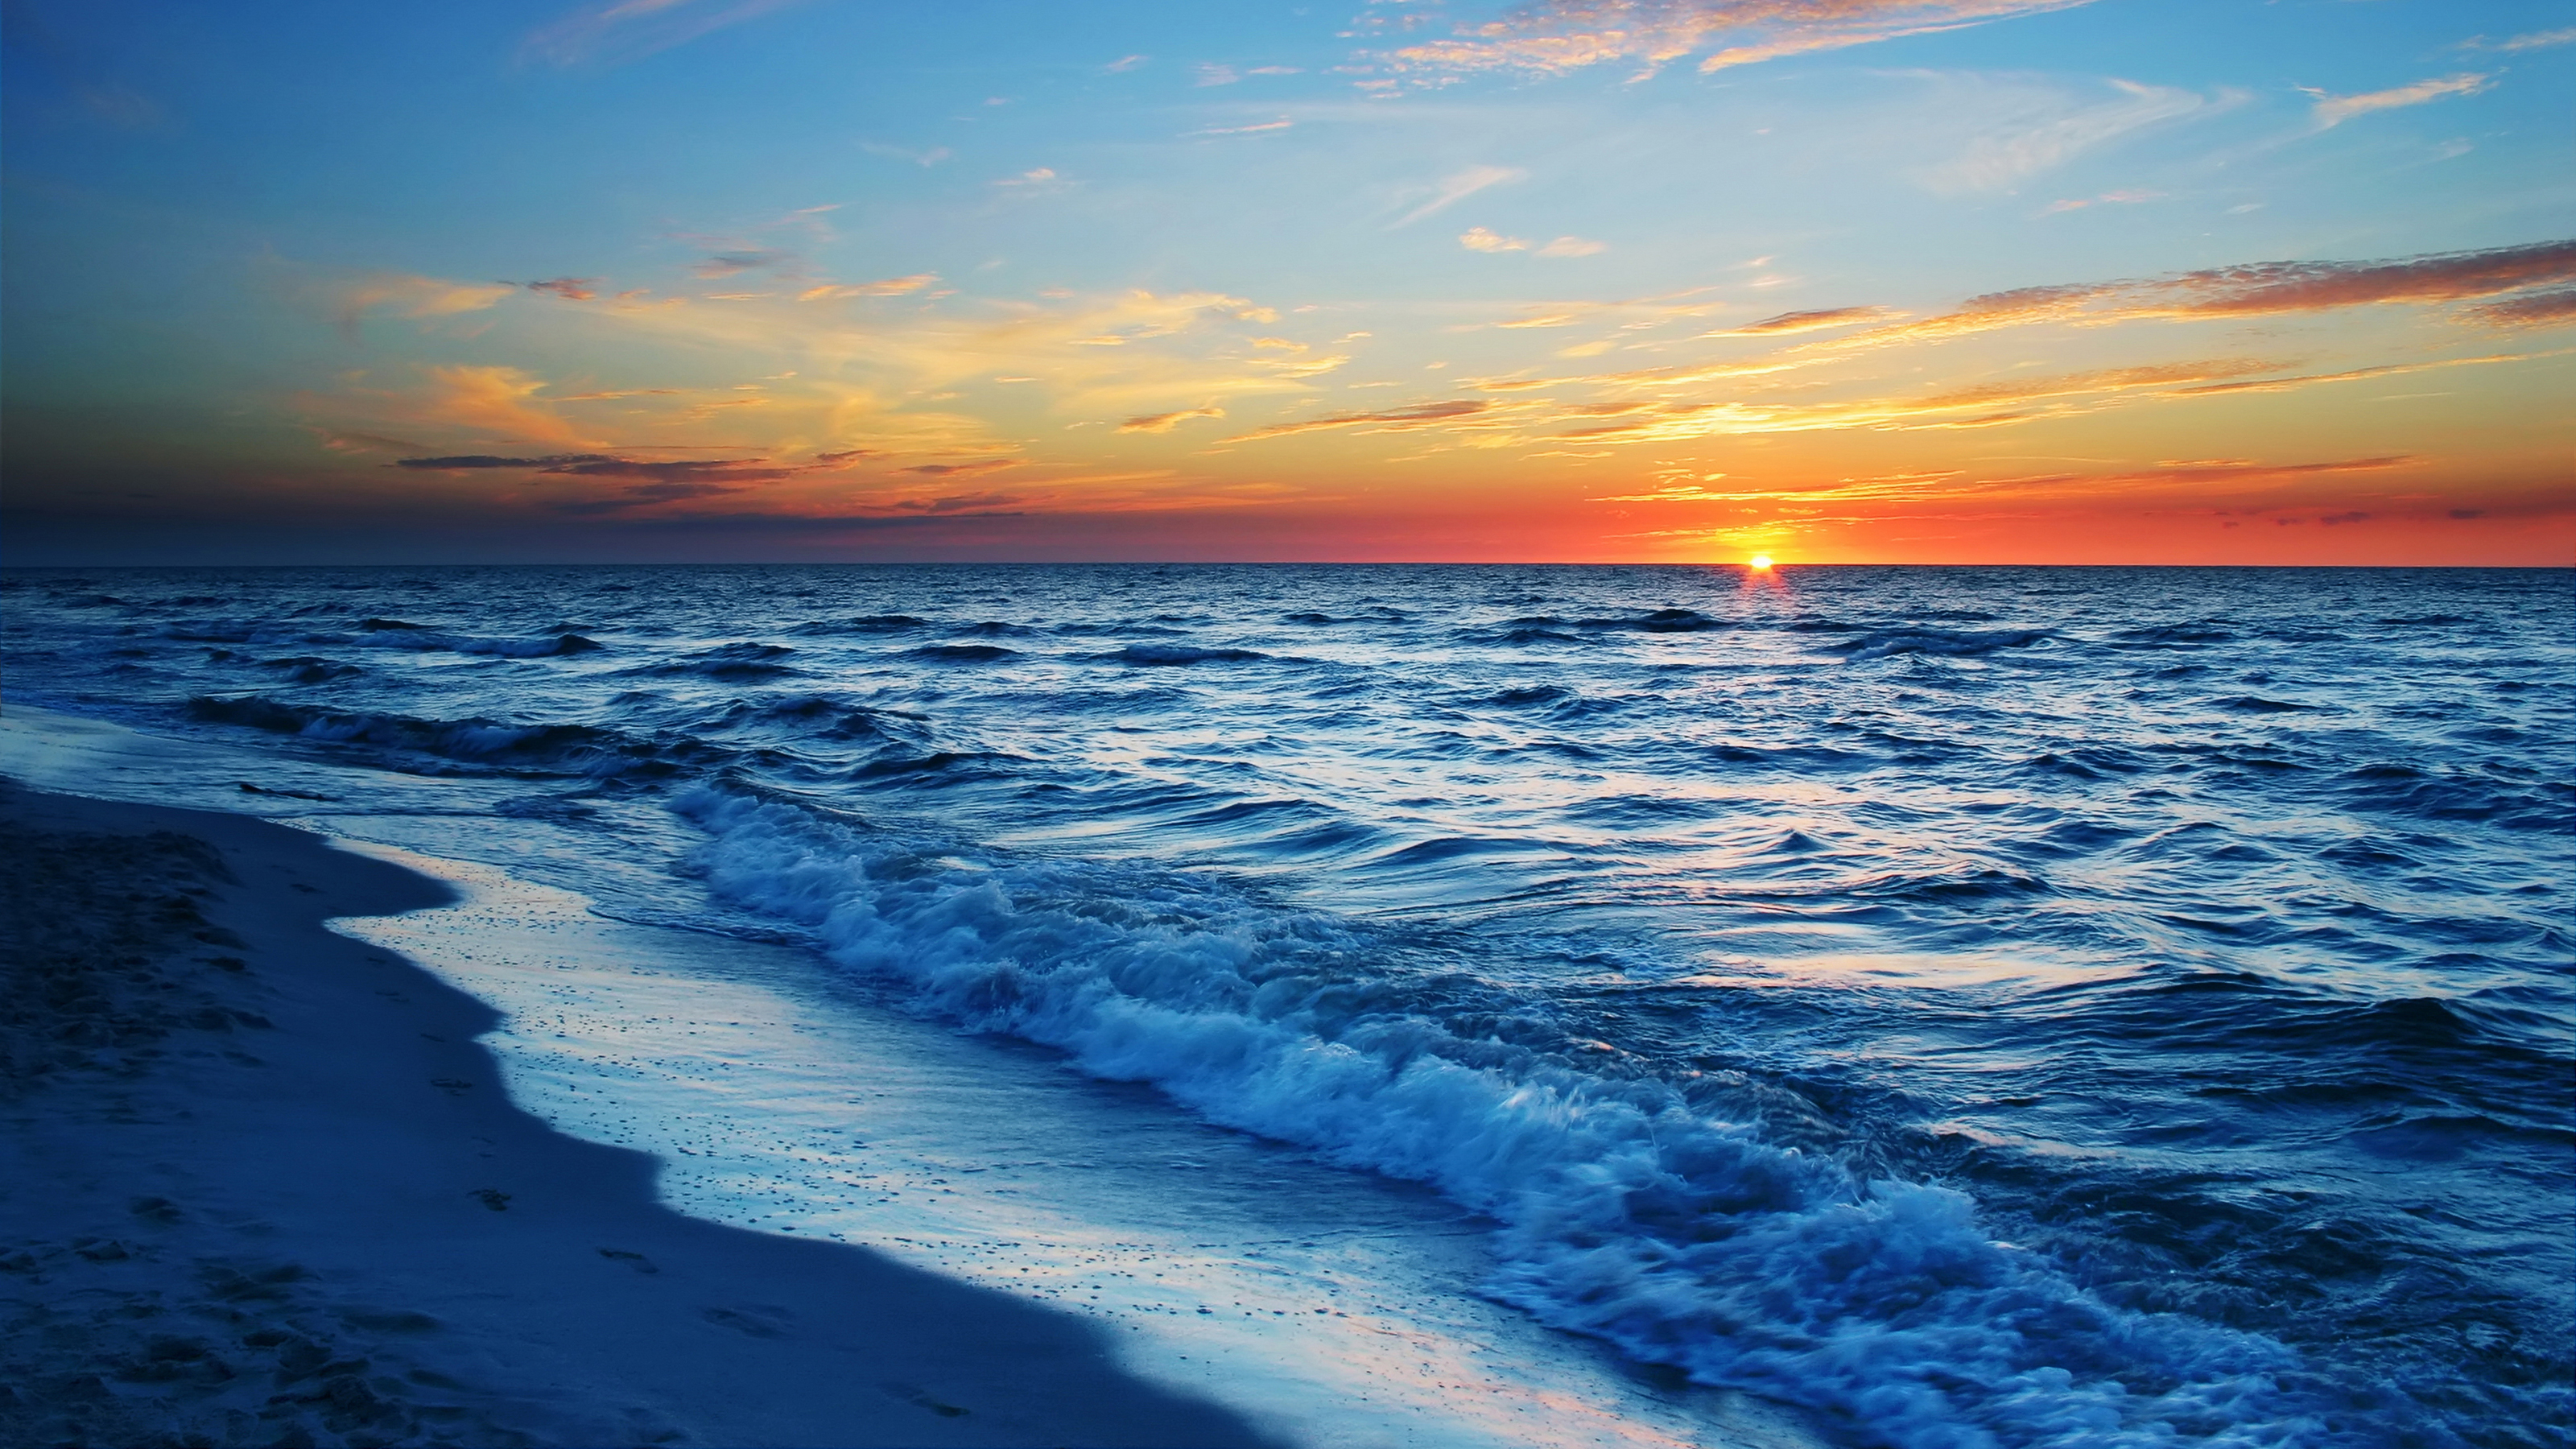 Ocean Hd Wallpaper Background Image 3200x1800 Id 924603 Abyss